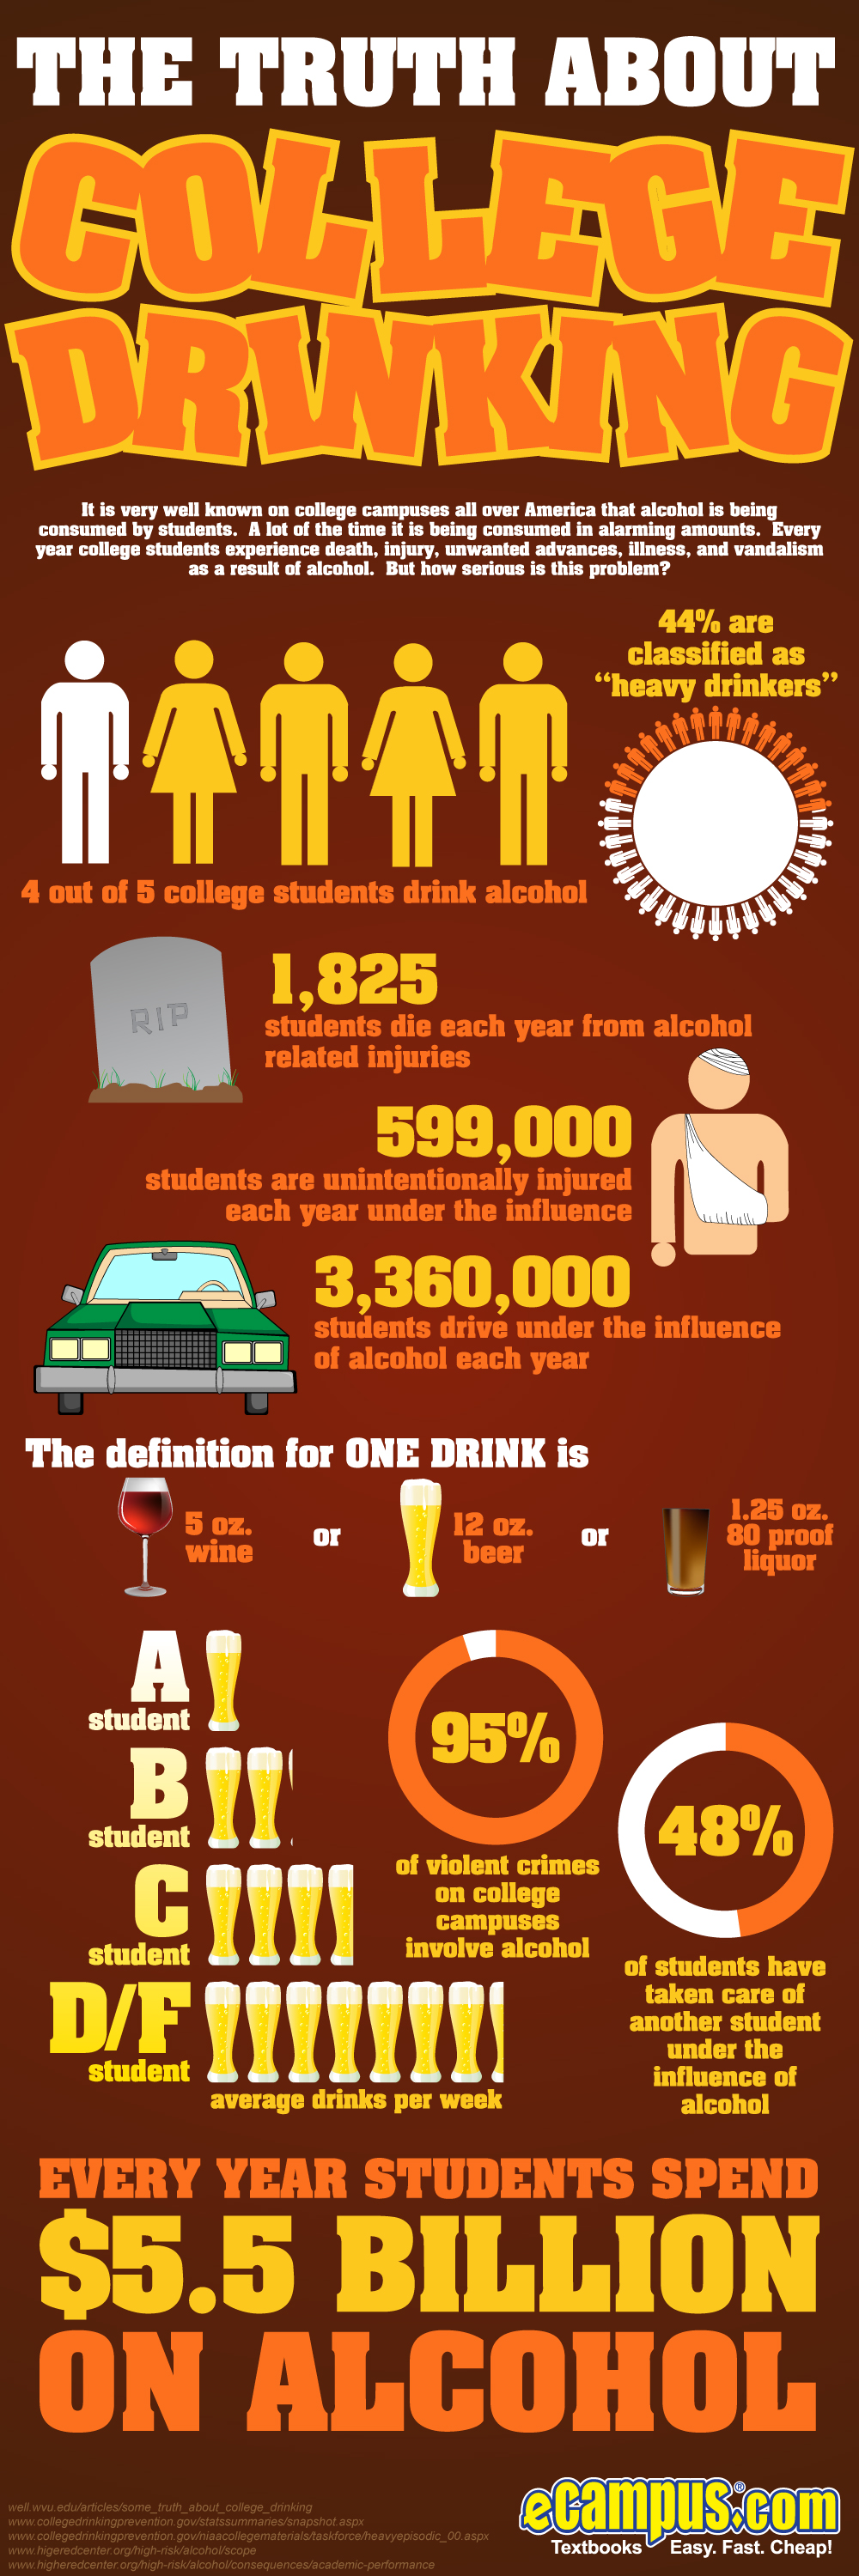 TheTruthAboutCollegeDrinking_4f184bd860771